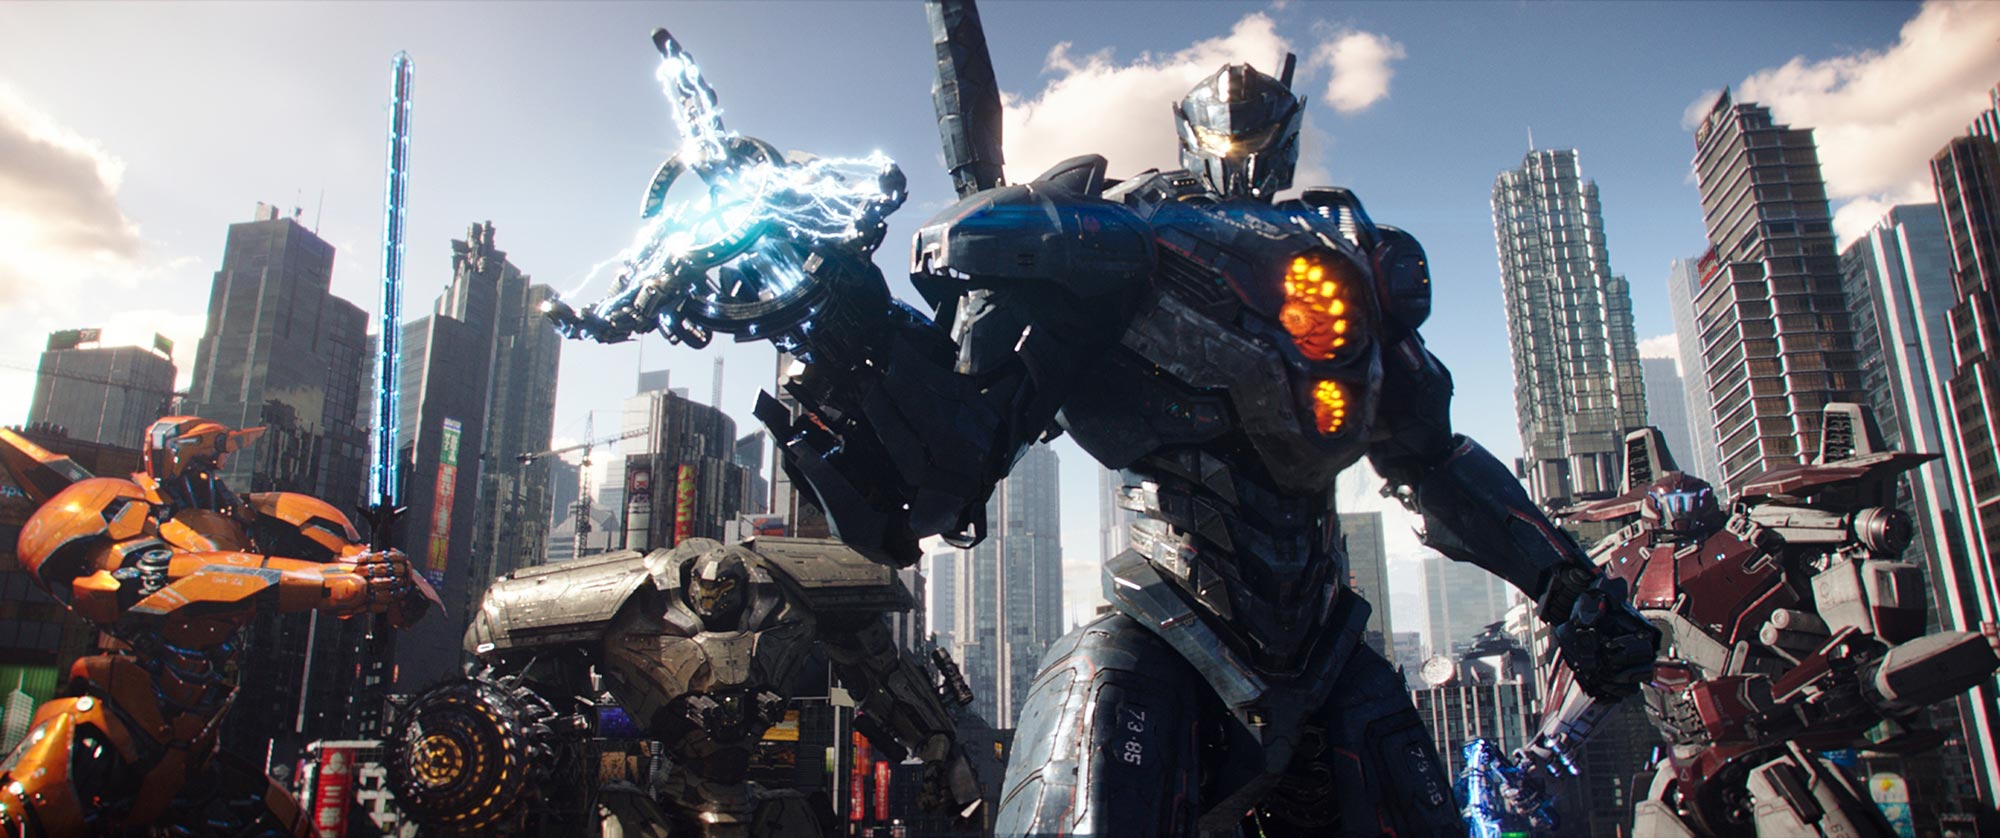 Pacific Rim Uprising - weapons